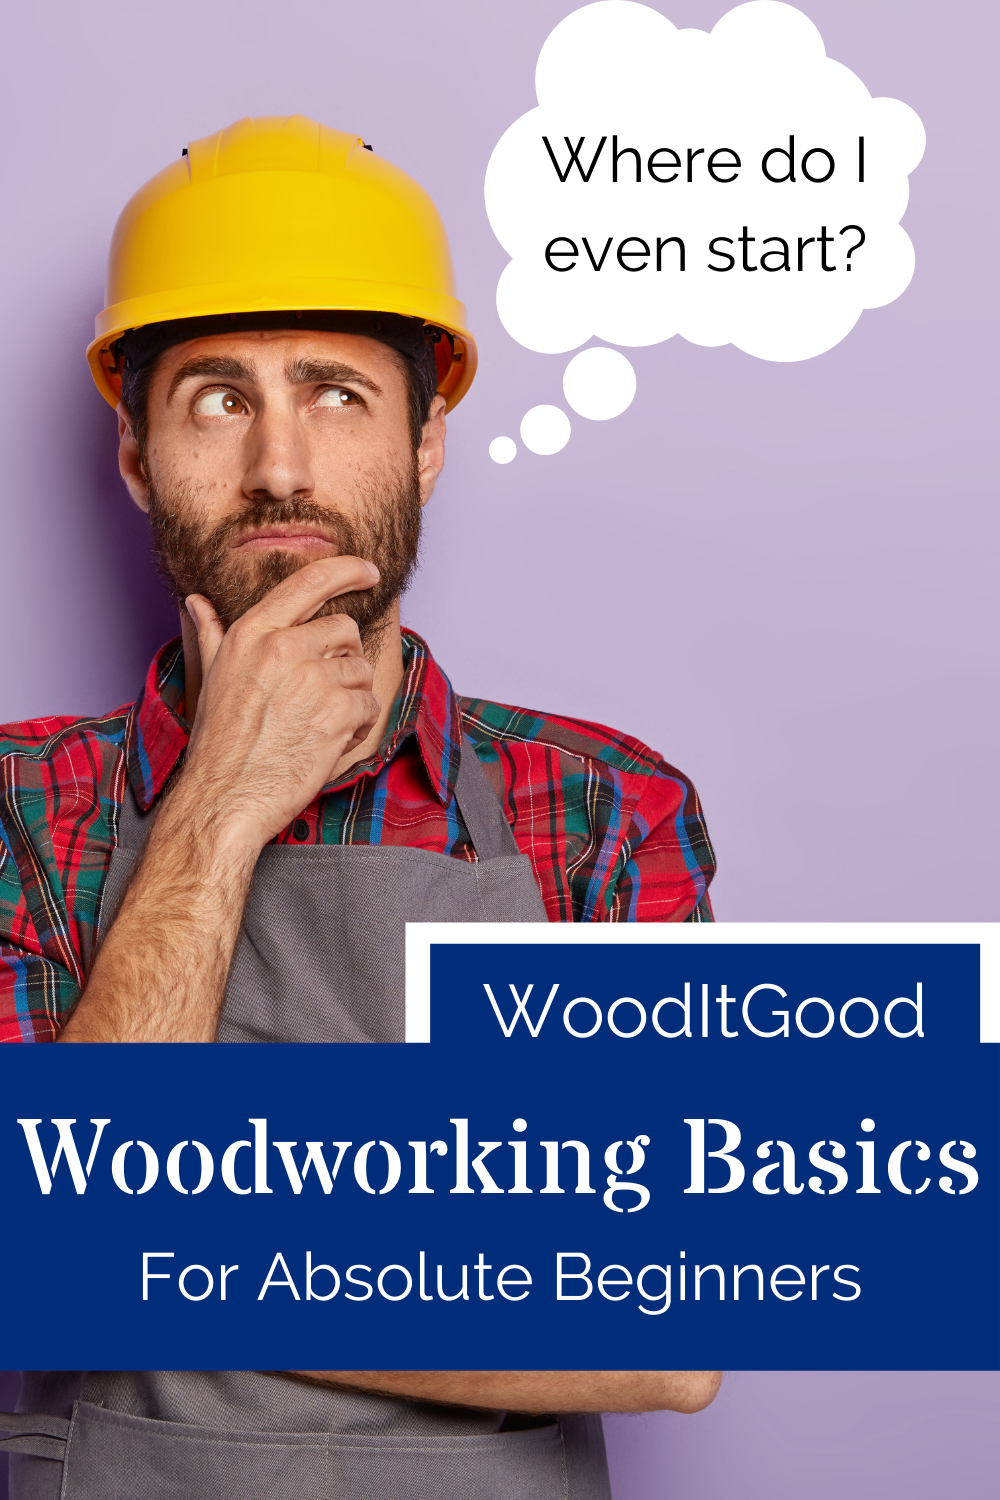 Woodworking basics, how to start and not get in over your head.